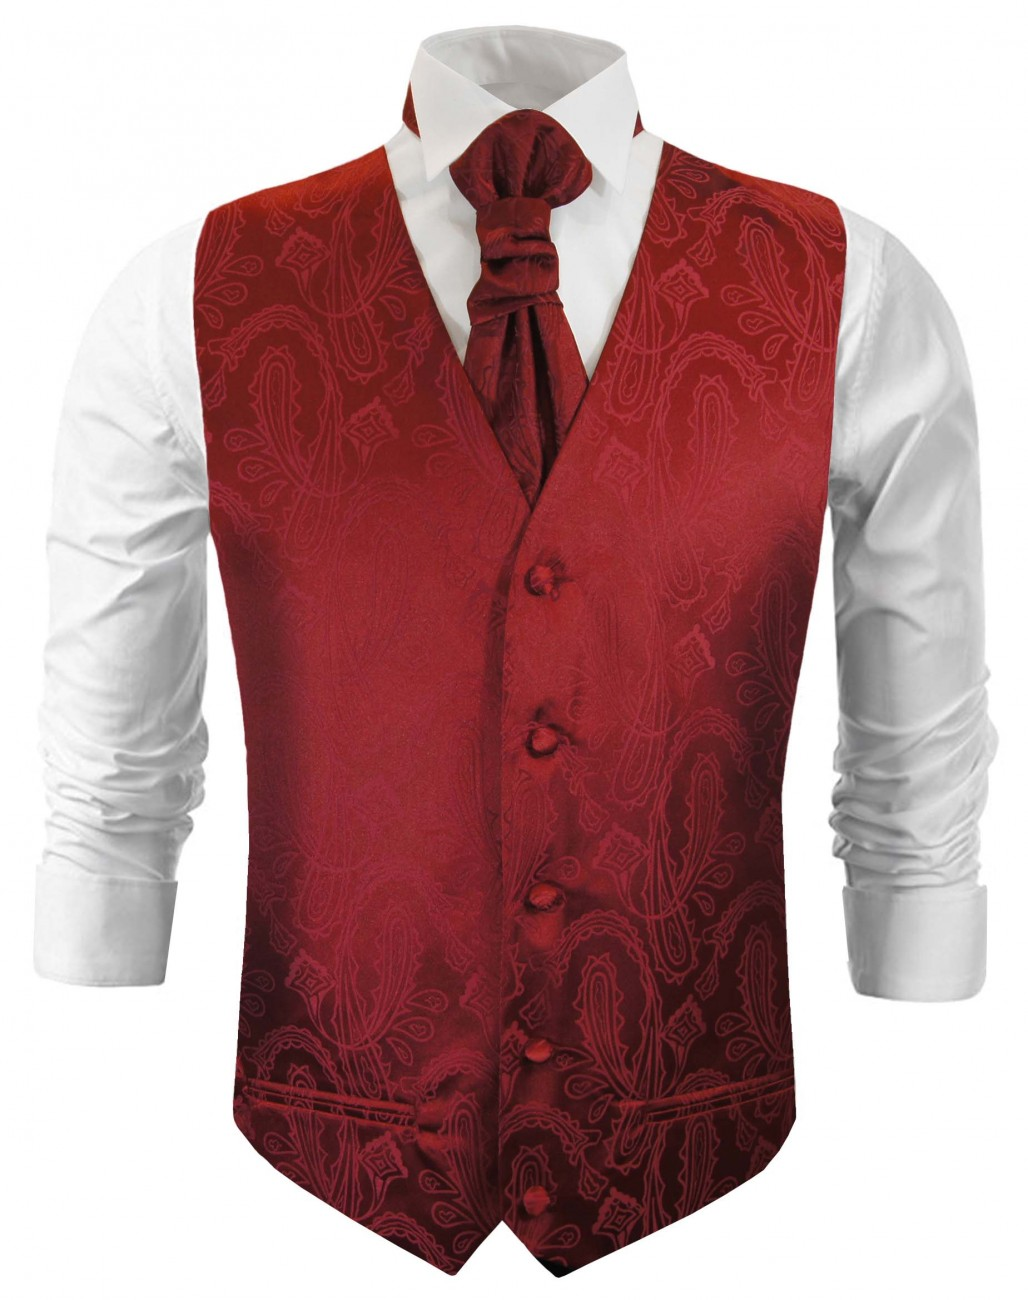 Burgundy red wedding vest waistcoat with cravat